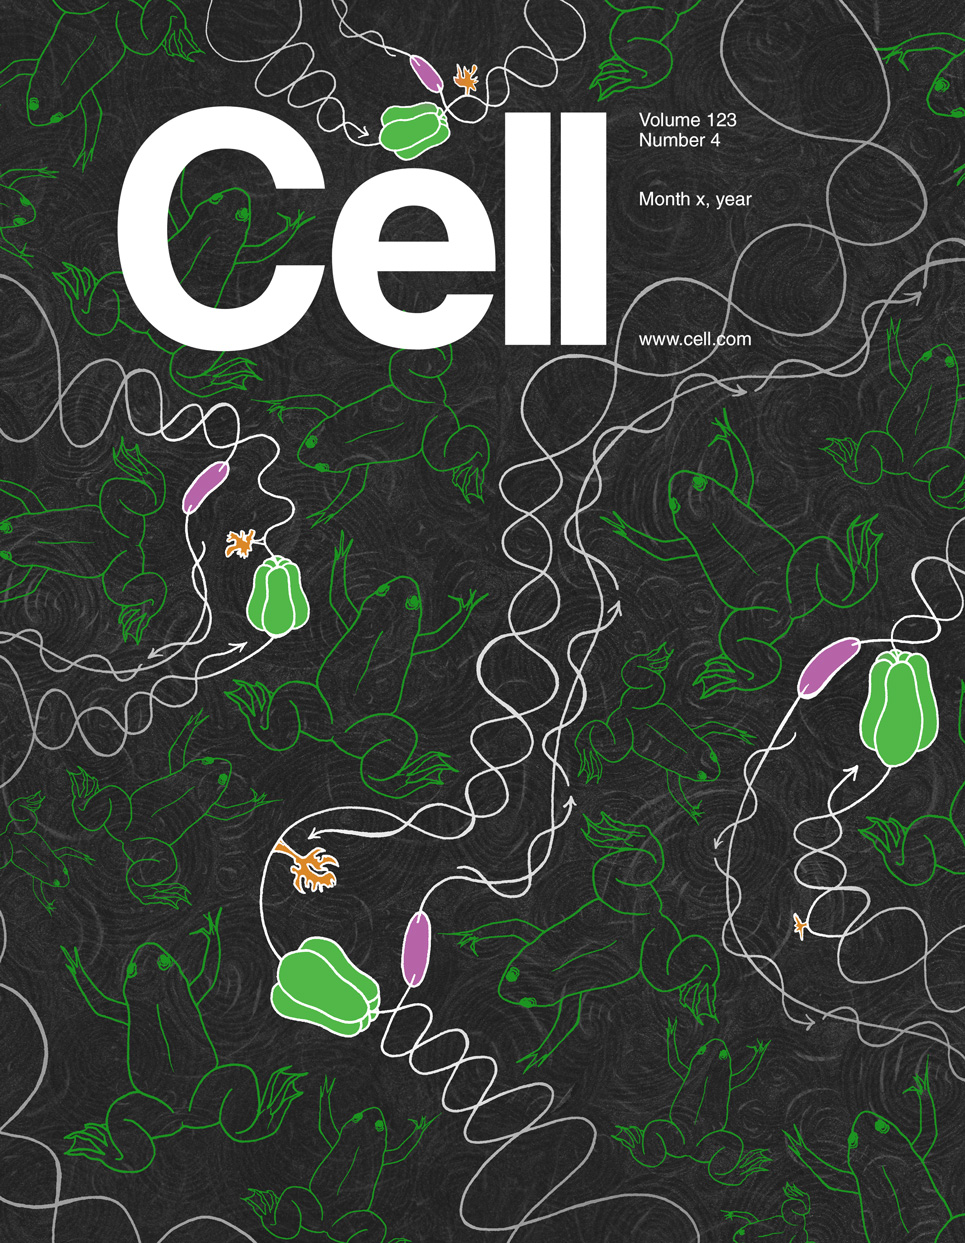 Proposed Cell Journal Cover